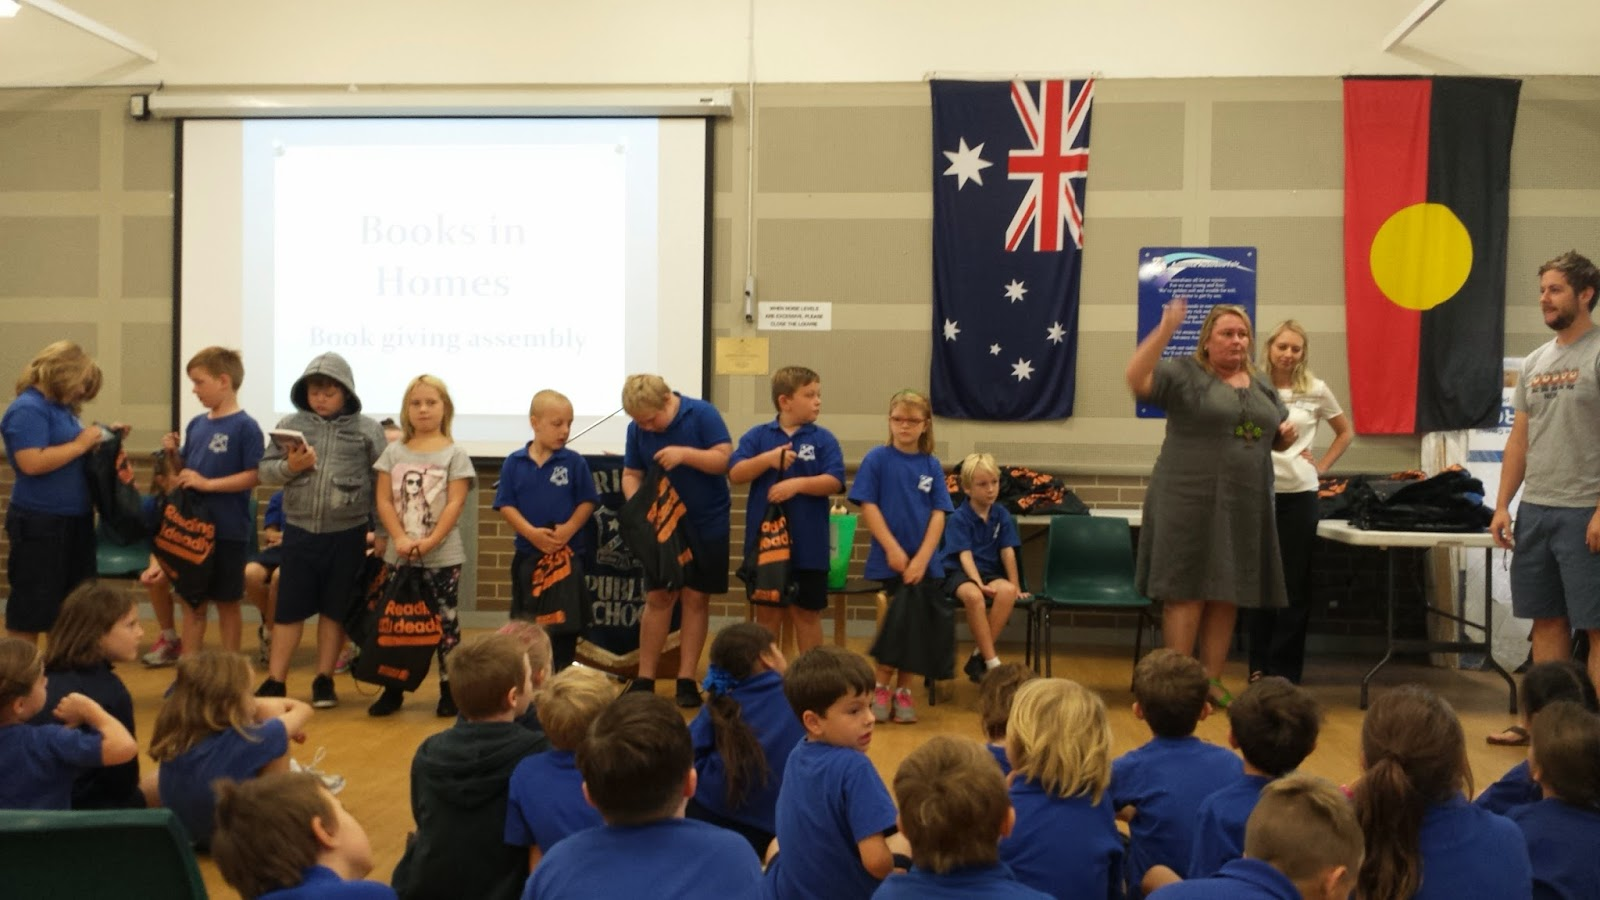 Books in homes school assembly